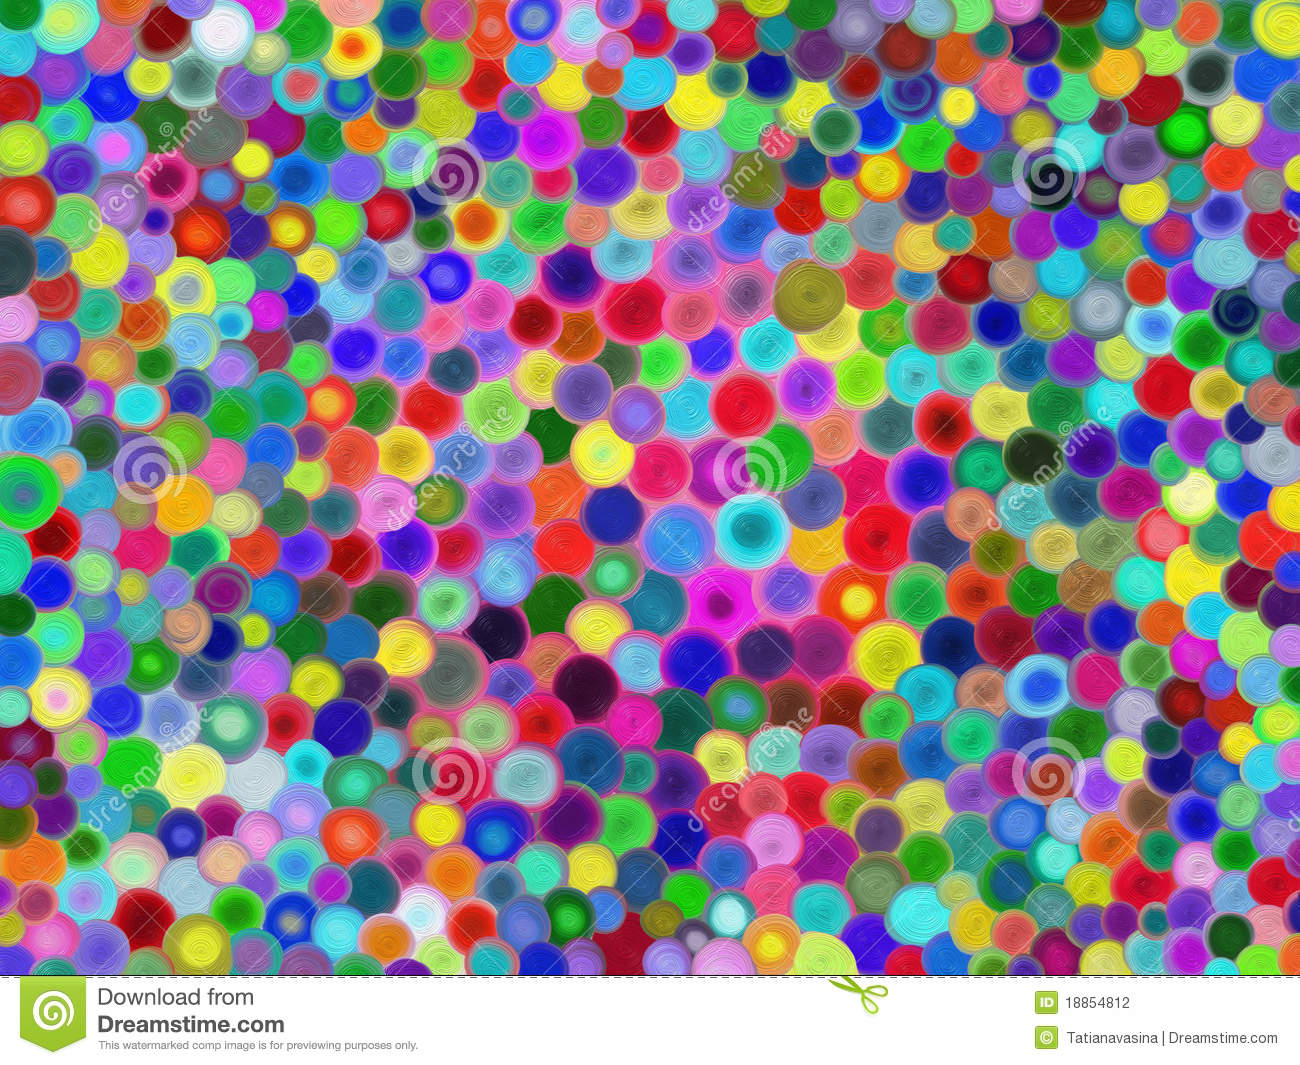 3d Rainbow Psychedeli Wallpaper Multicolored Circles Stock Photography Image 18854812